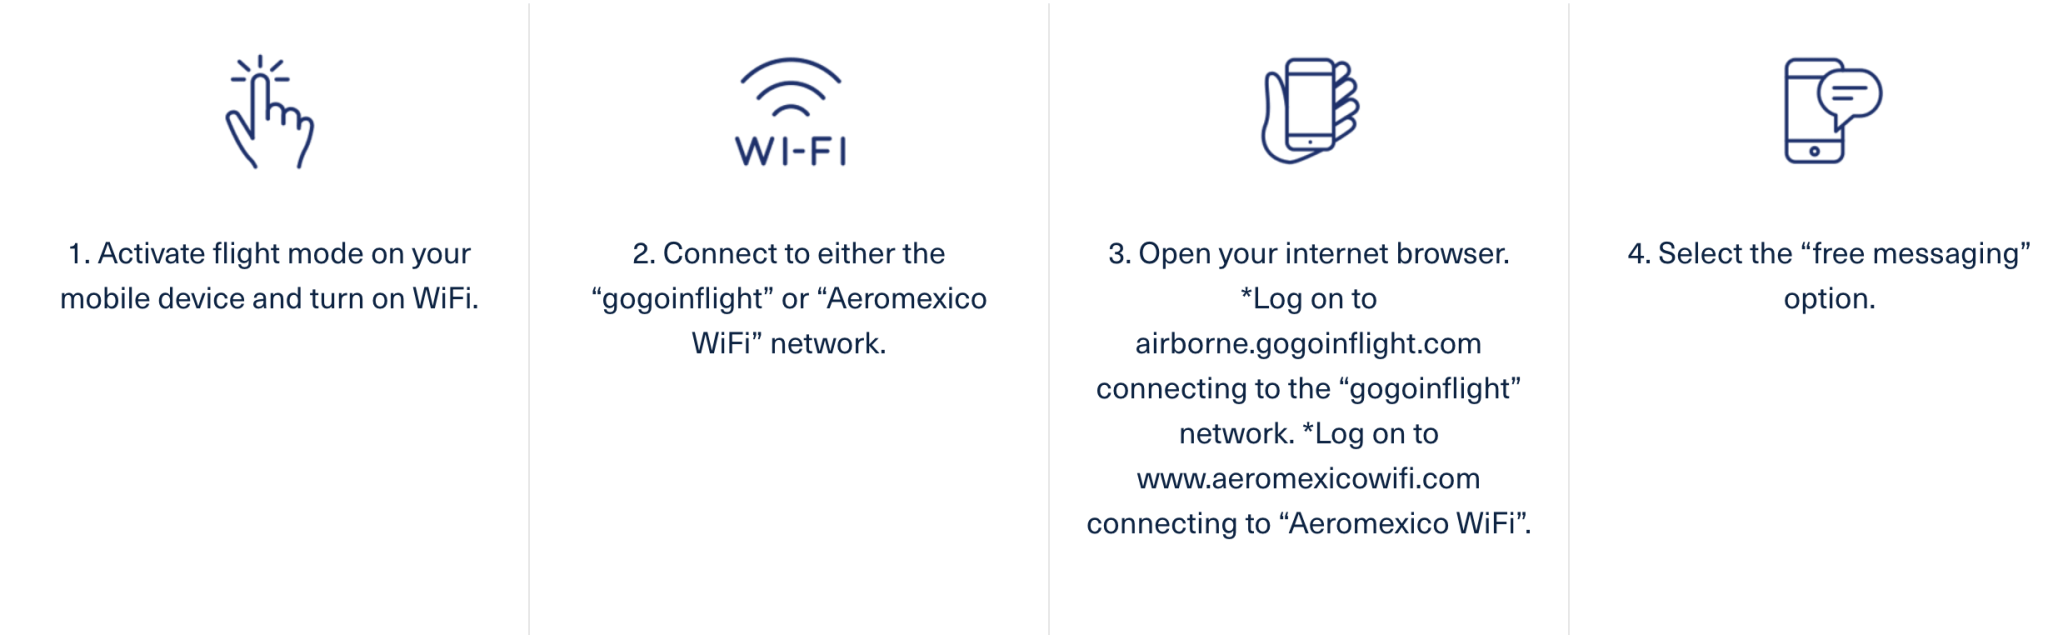 Instructions on how to enable Aeromexico